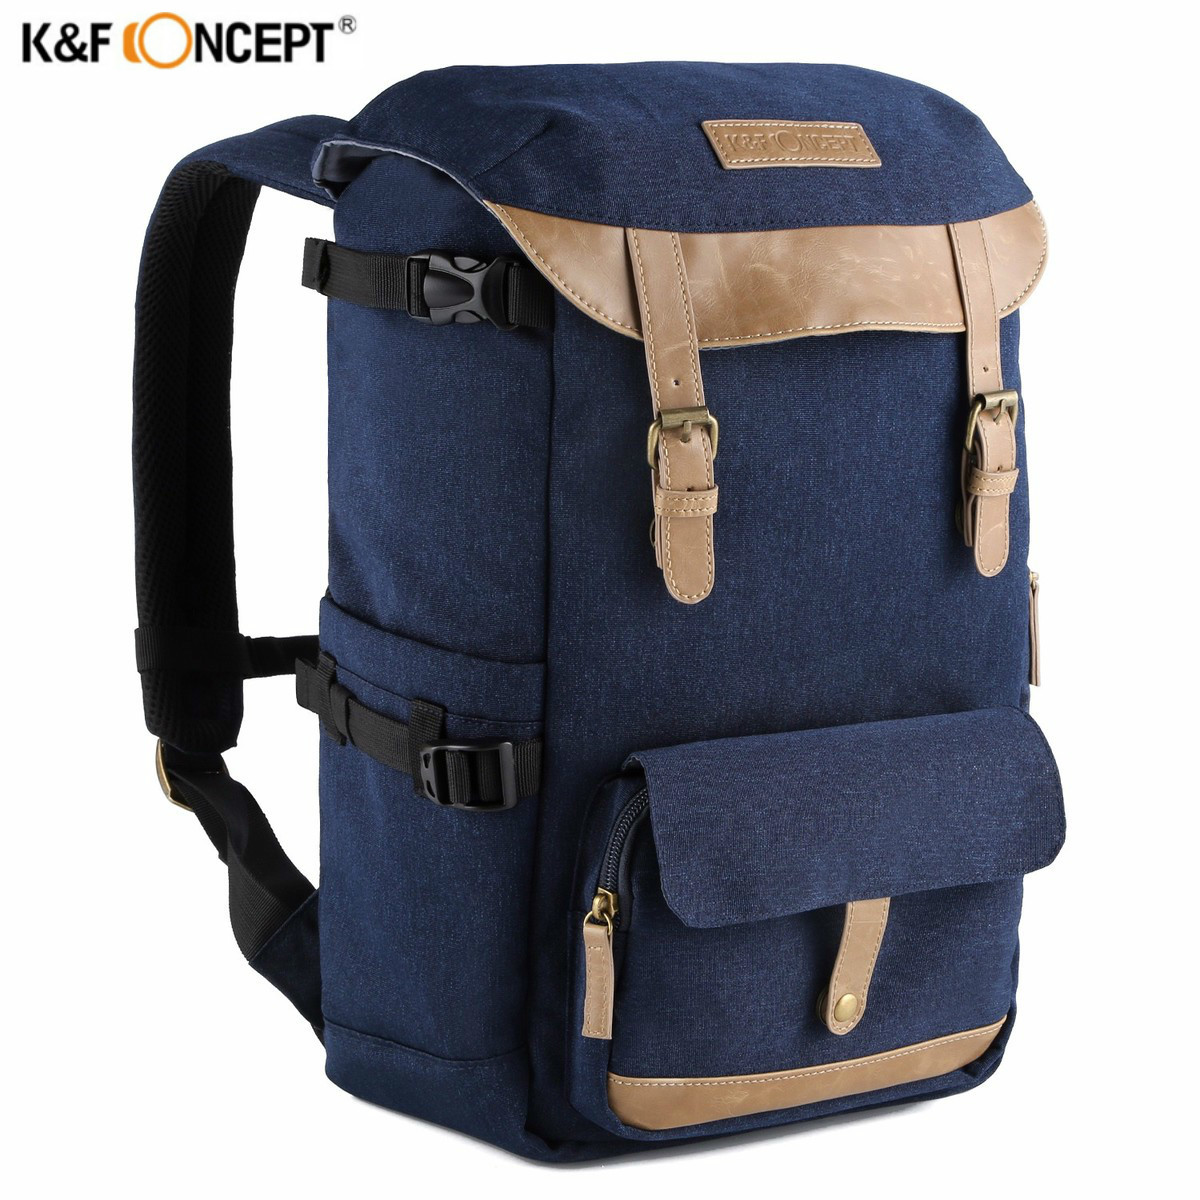 K&F CONCEPT Multifunctional Camera Backpack Fashionable Photo/Video Bag Case With Large Capacity For Canon Nikon SLR DSLR Camera new pattern manfrotto mb pl mb 120 camera bag backpack video photo bags for camera backpack